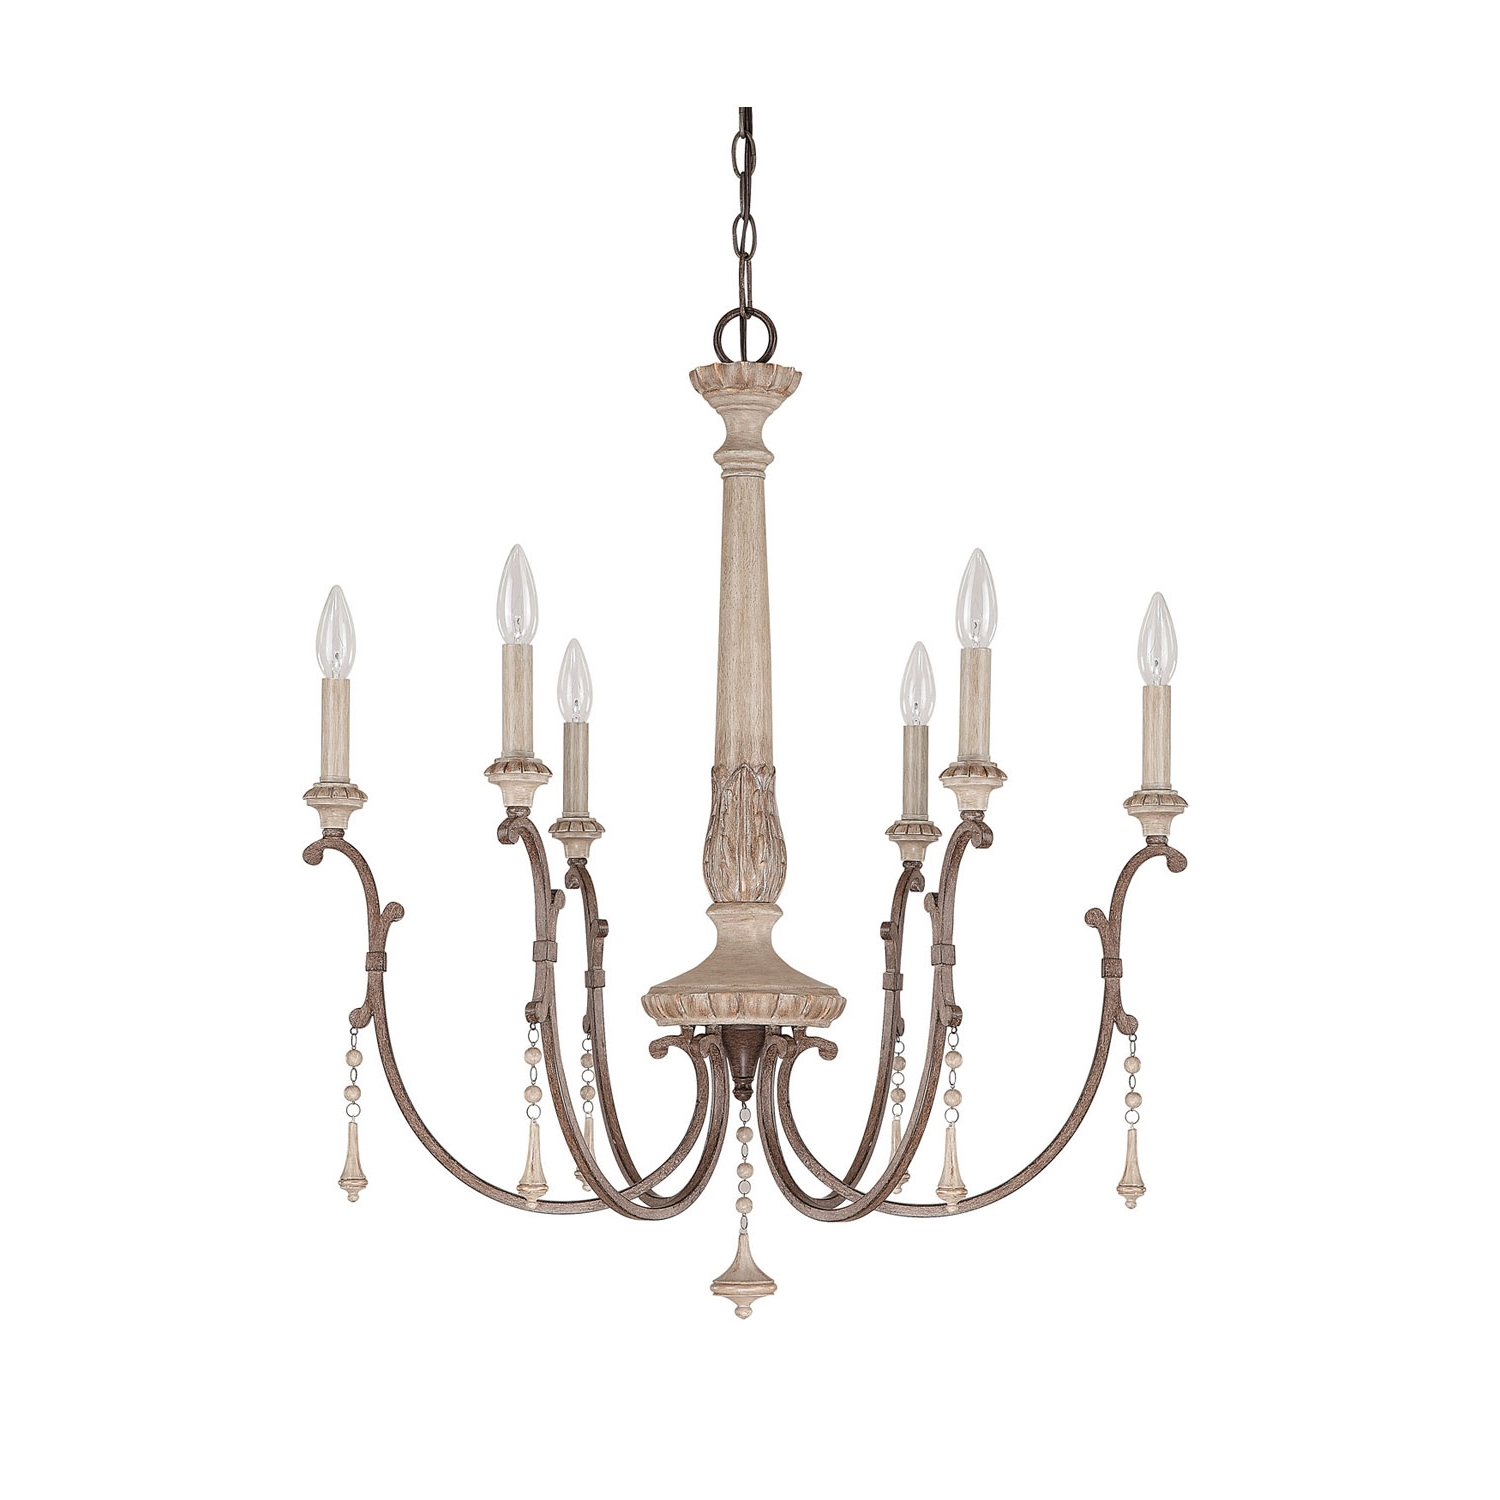 Fashionable Capital Lighting Fixture Company Chateau French Oak Six Light Regarding French Style Chandeliers (View 3 of 20)